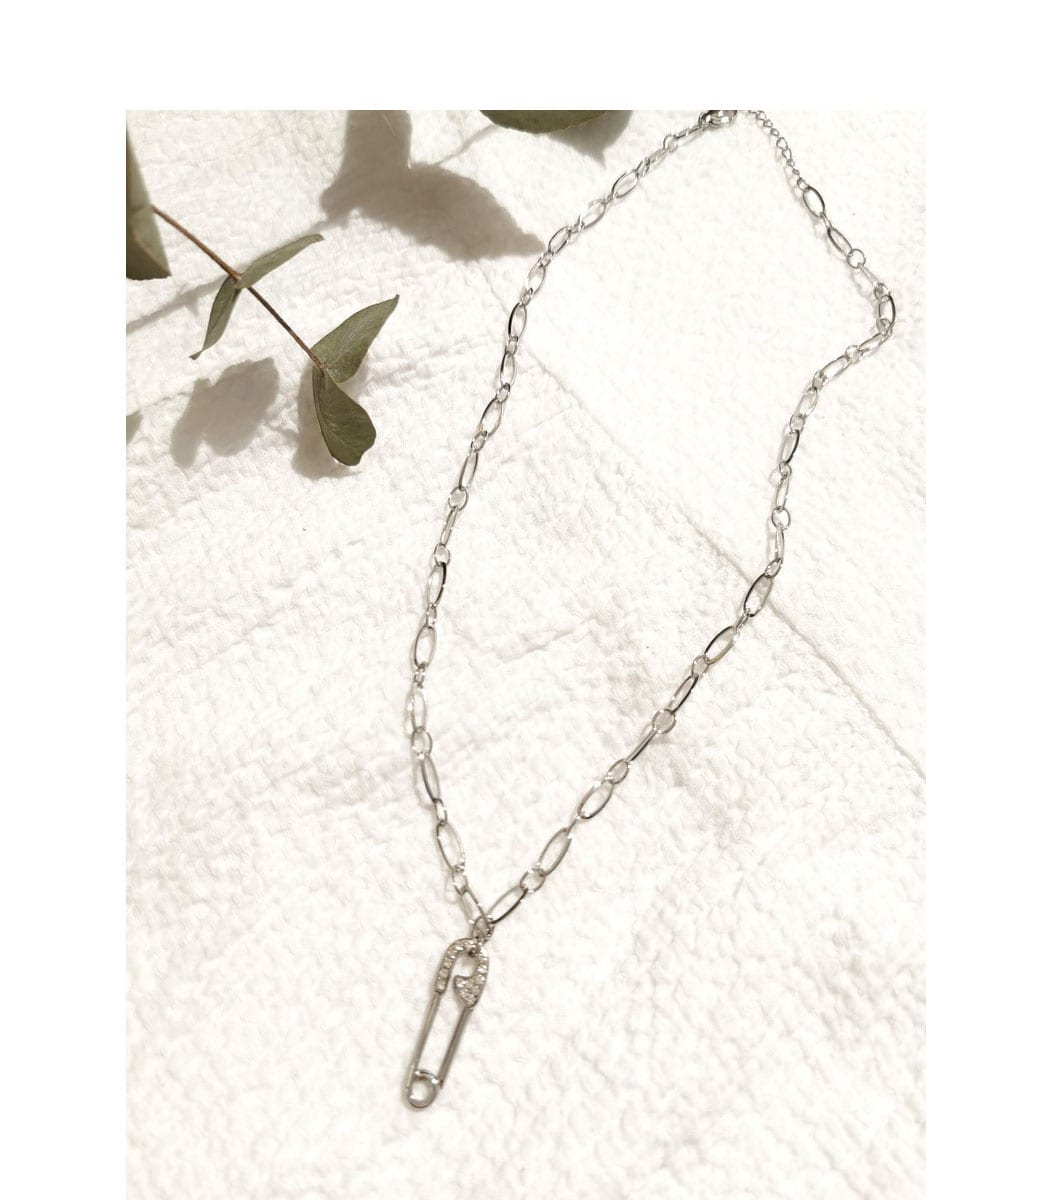 Safety pin link necklace